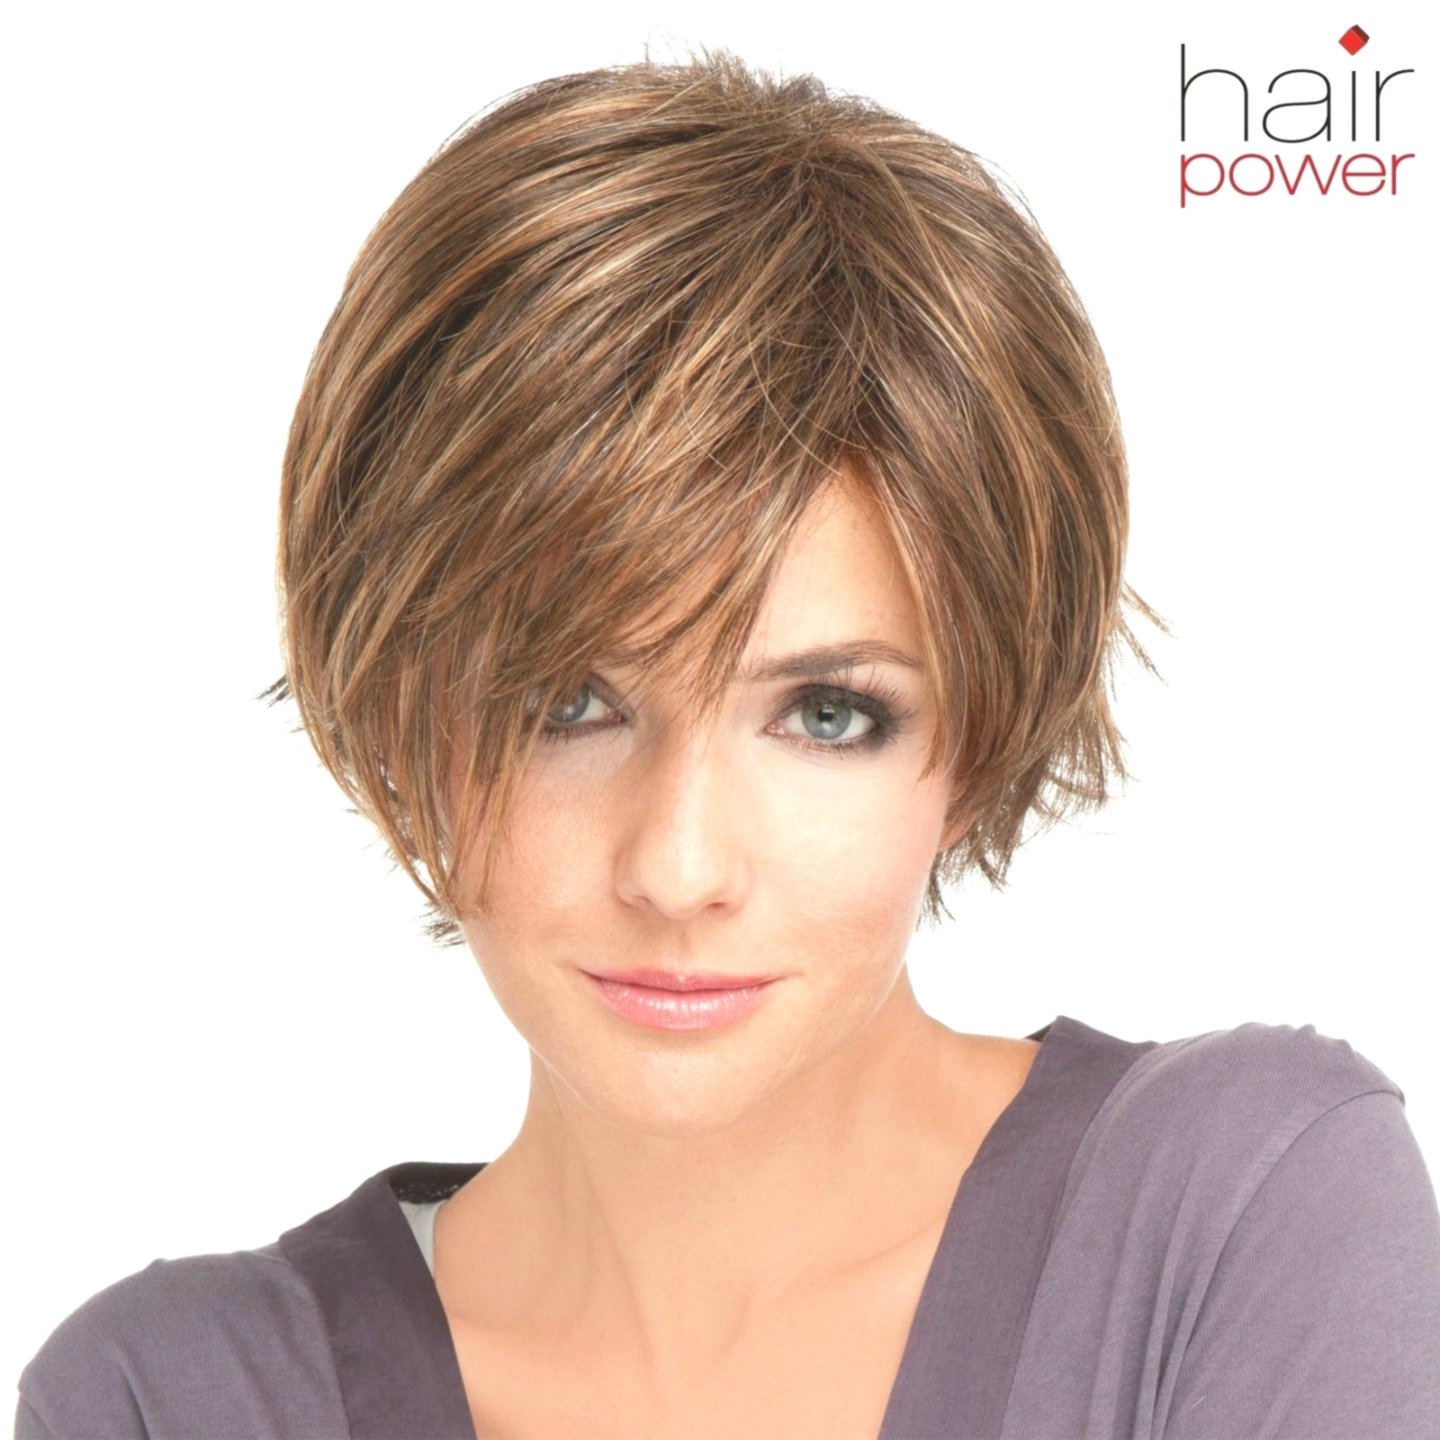 finest chic short hairstyles photo modern chic short hairstyles gallery